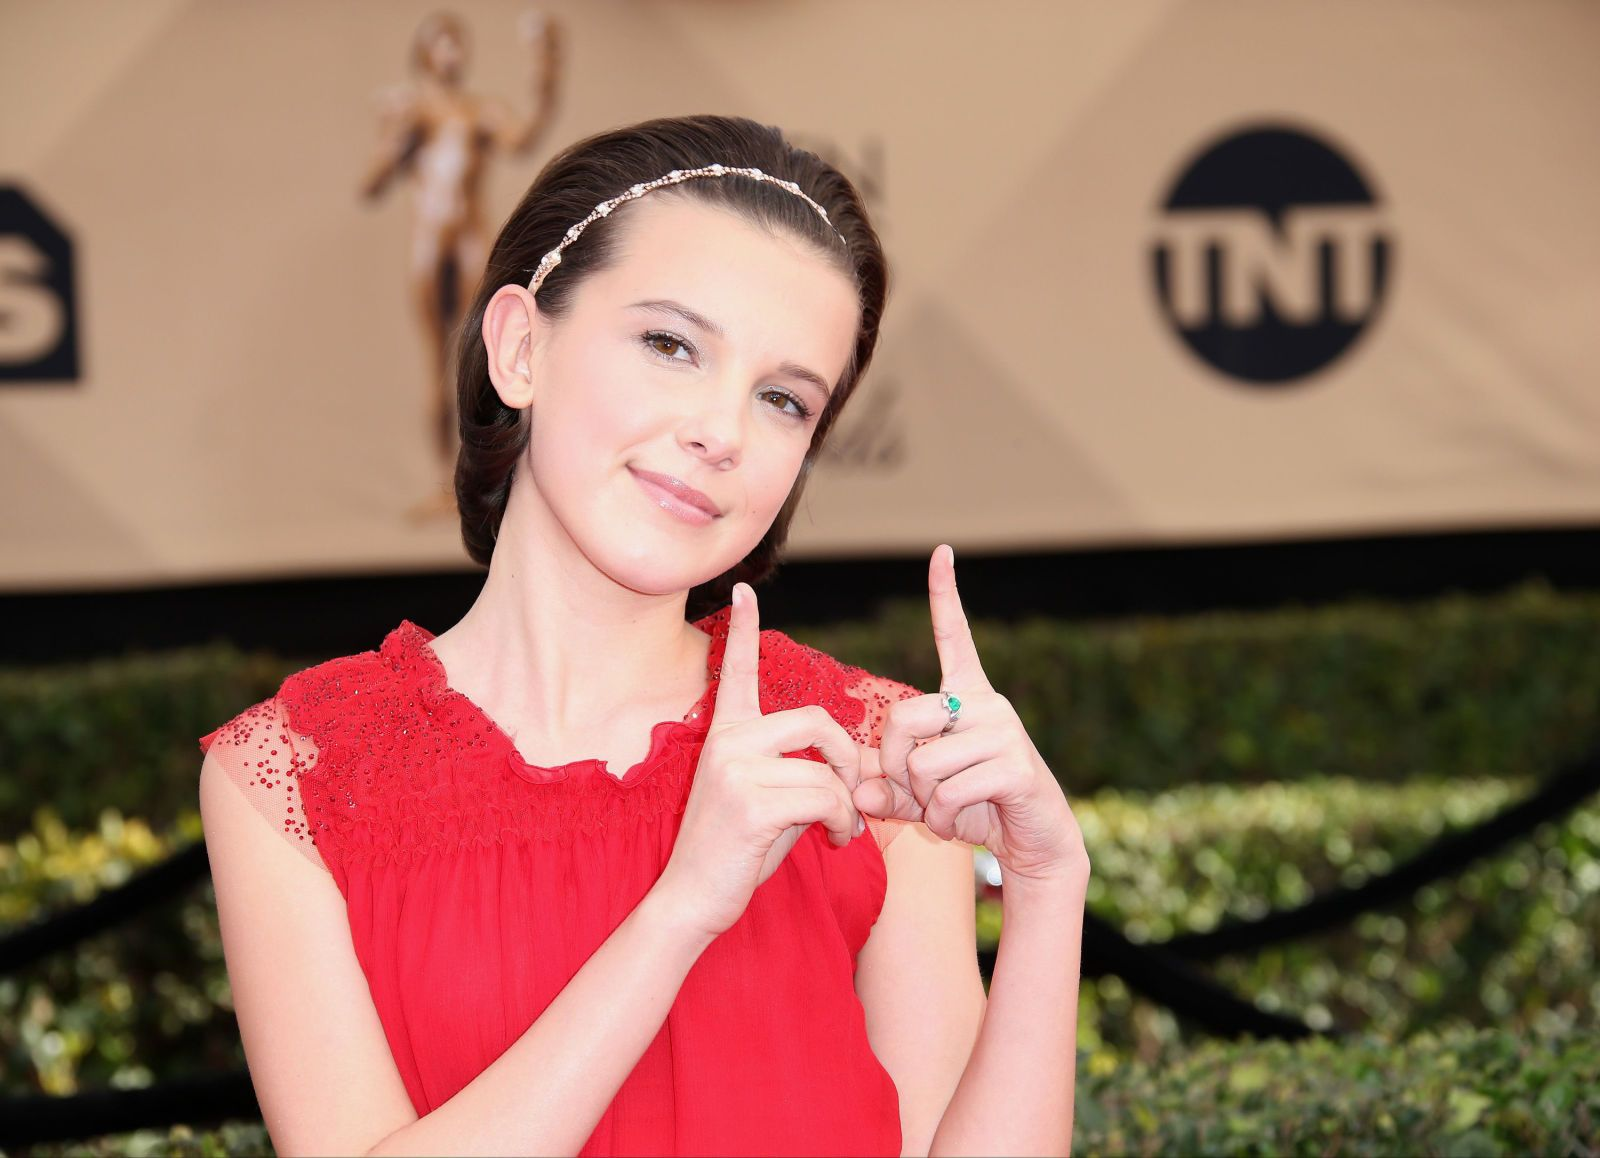 Millie Bobby Brown Signs With Modeling Agency Bobby Brown Millie Bobby Brown Millie